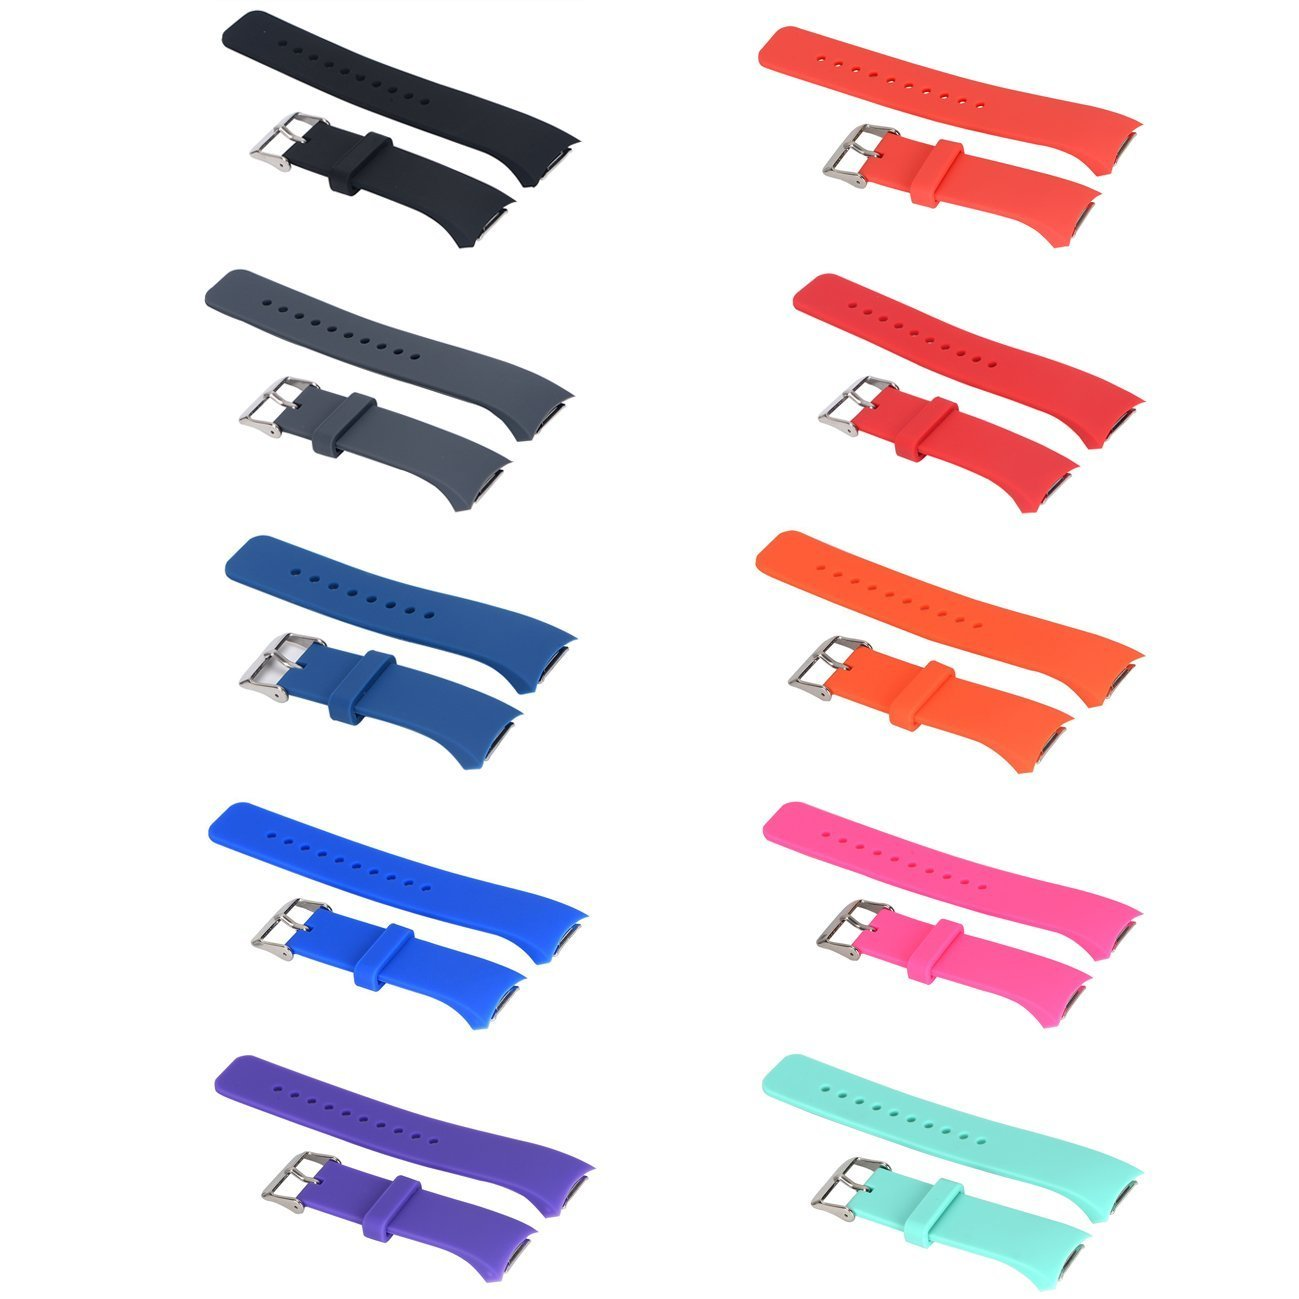 Turnwin 10pcs Large Straps for Gear S2 Bands Smartwatch Silicone Replacement Band/Strap for Samsung Gear S2 SM-R720 / Samsung Gear S2 SM-R730